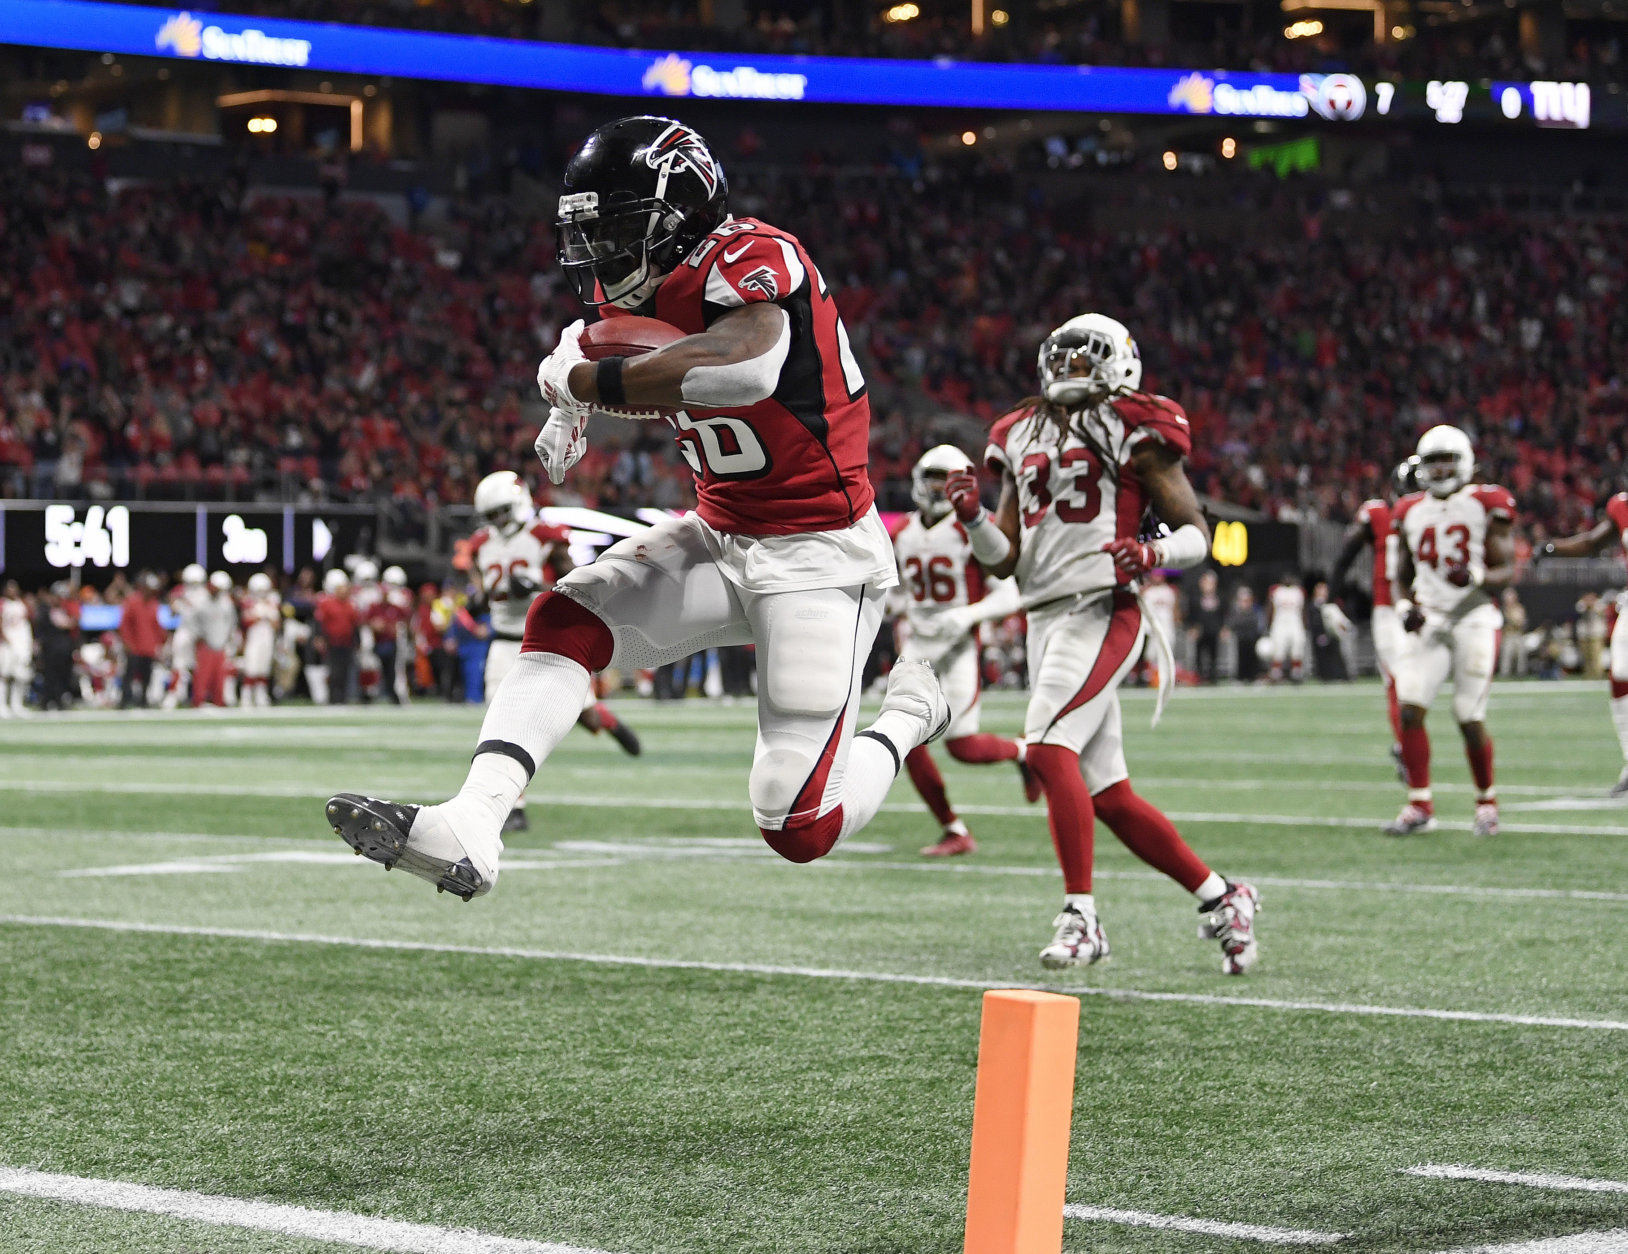 Atlanta Falcons running back Tevin Coleman (26) leaps into the end zone as he scores on a pass from Matt Ryan during the second half of an NFL football game against the Arizona Cardinals, Sunday, Dec. 16, 2018, in Atlanta. (AP Photo/Danny Karnik)